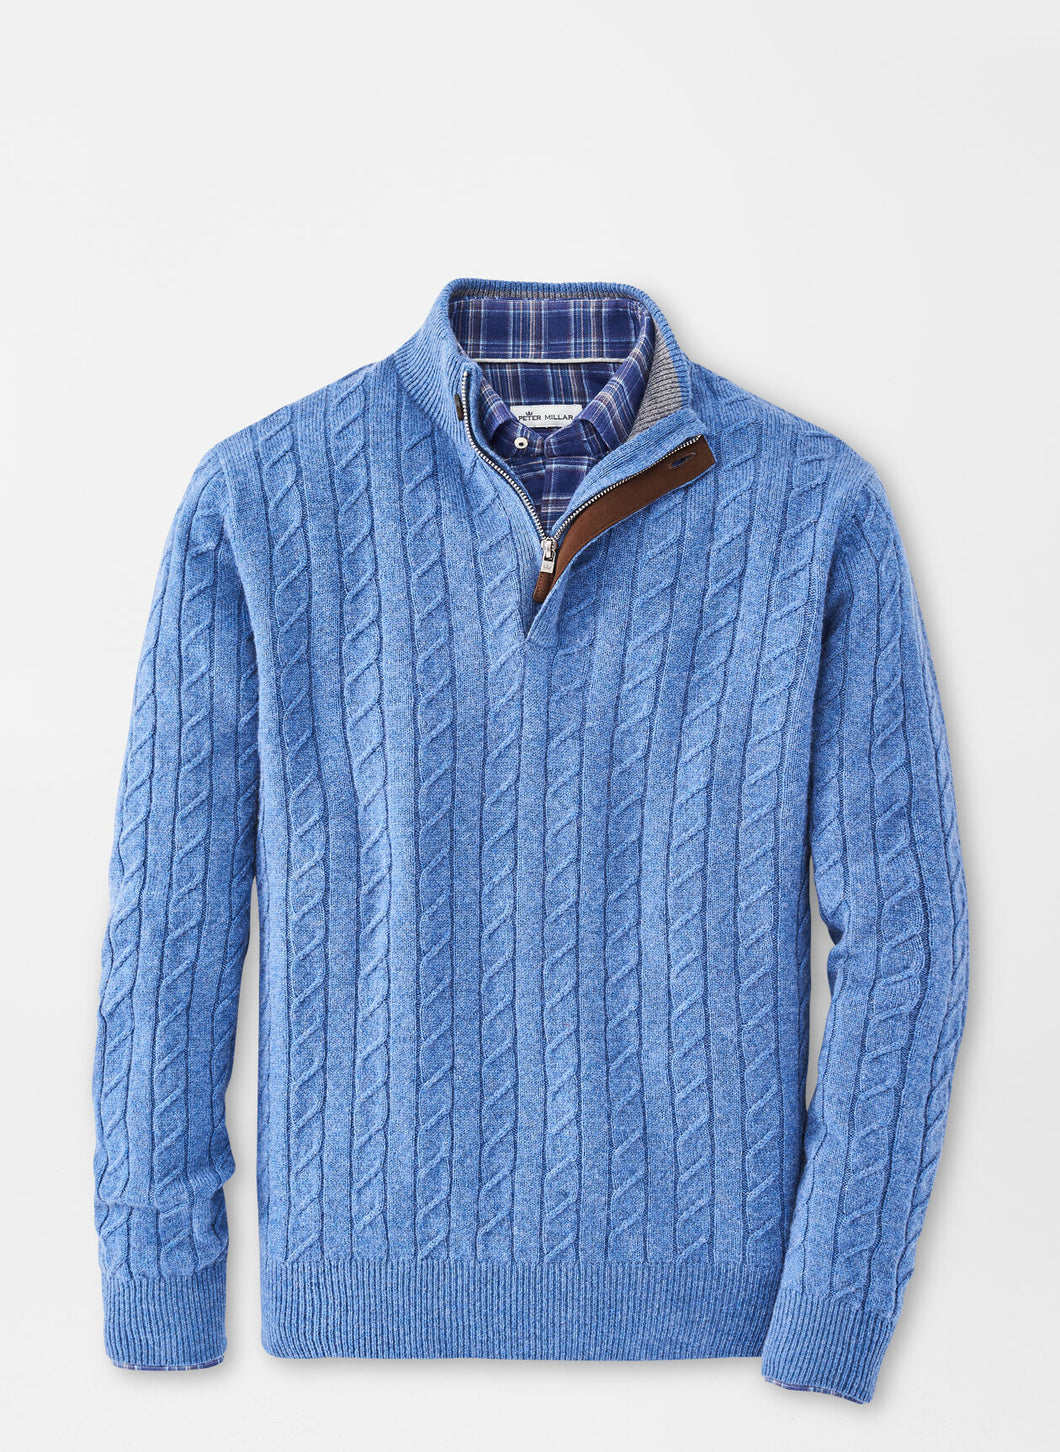 Peter Millar Wool Cable Quarter-Zip Sweater in Sailor Blue